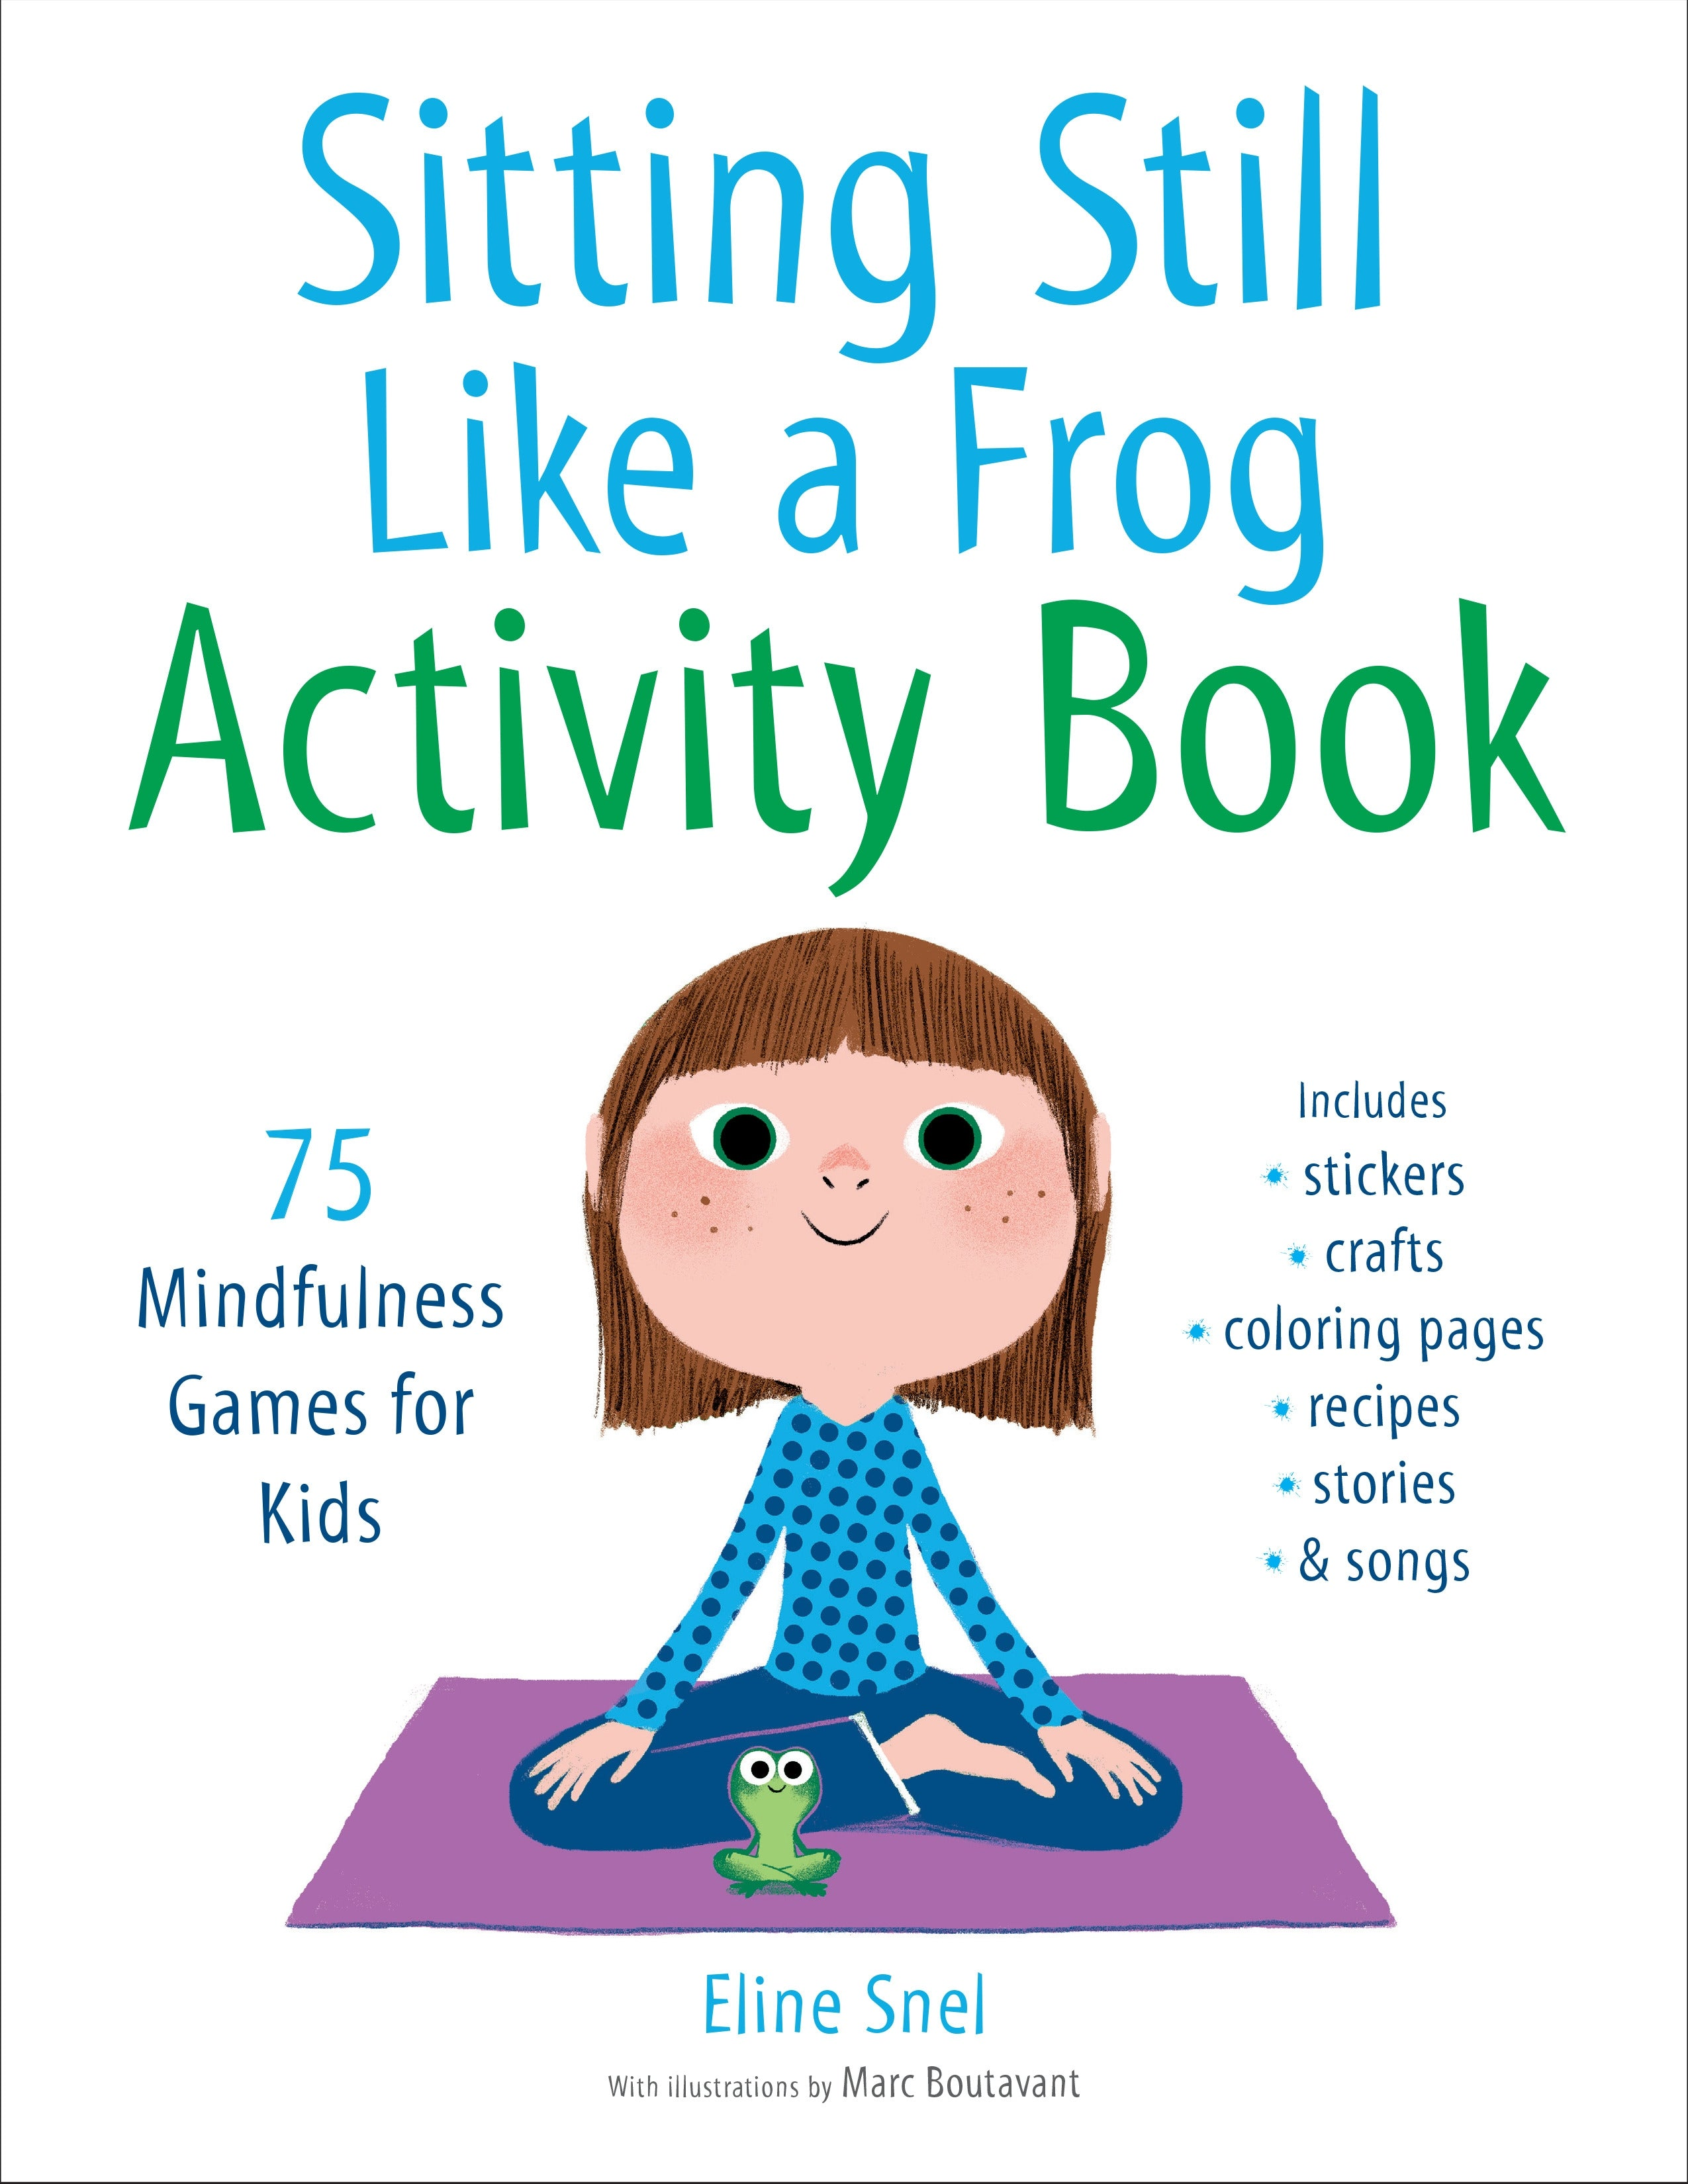 Sitting Still Like a Frog Activity Book; Eline Snel